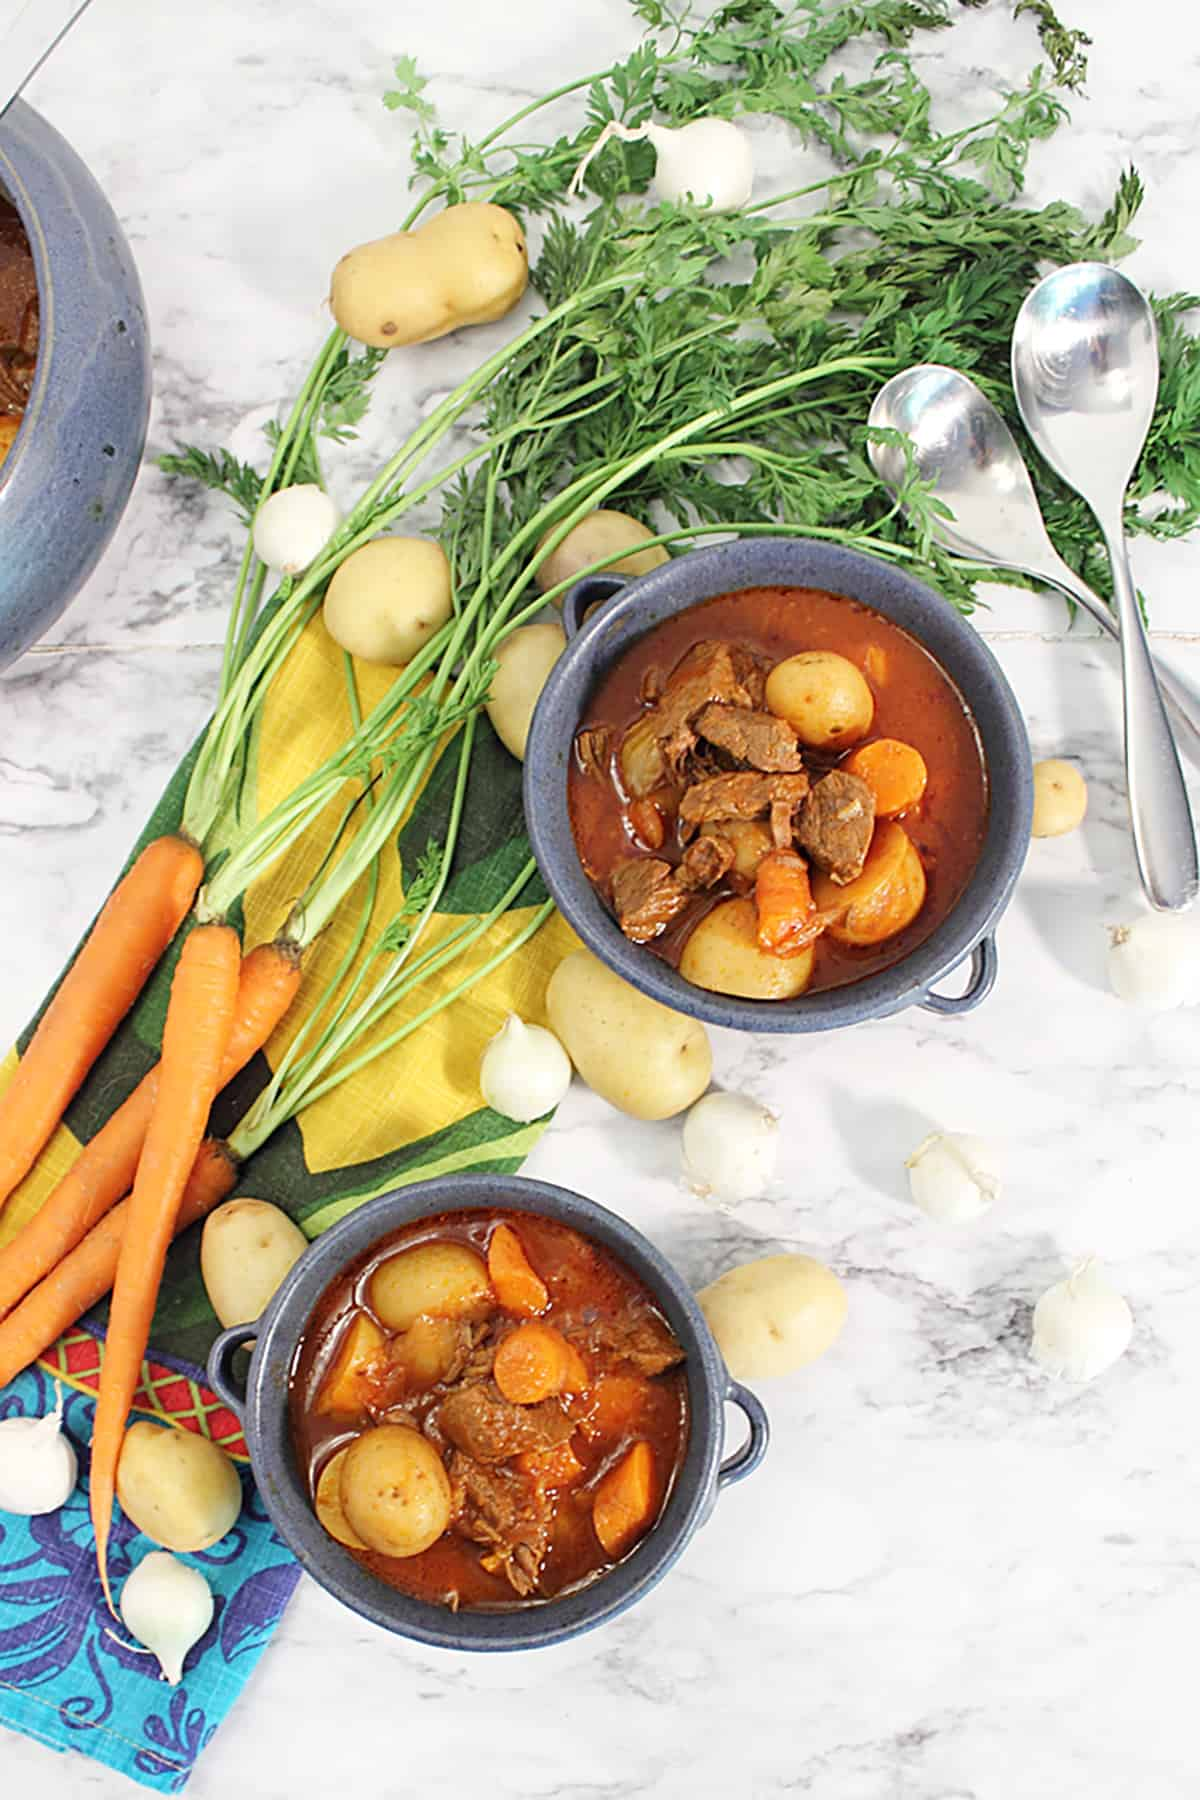 Overhead of two blue bowls of stew with carrots beside them.